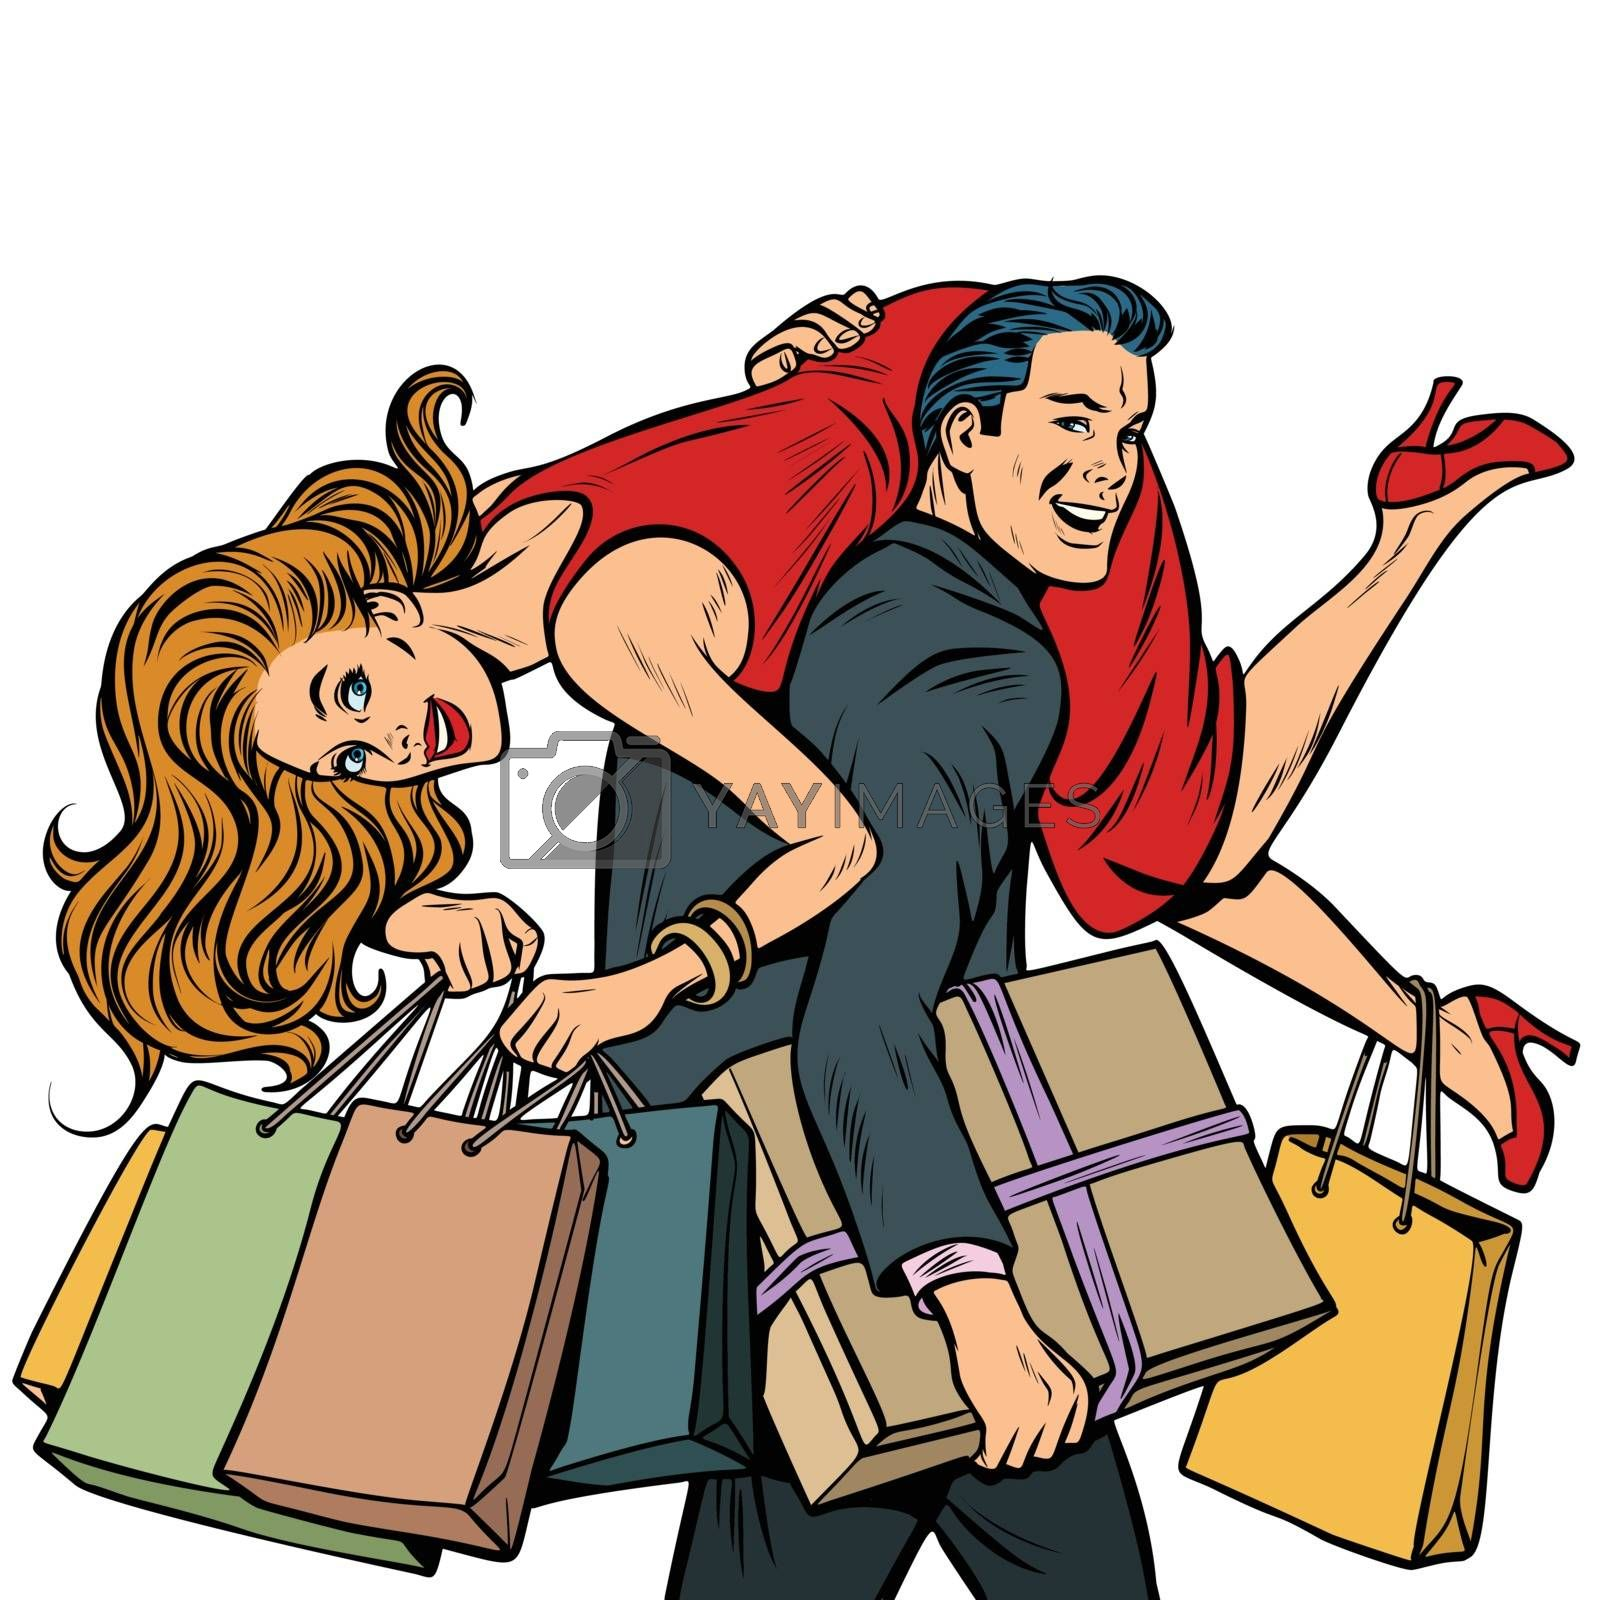 man carries woman in his arms, sale. Pop art retro illustration vintage kitsch drawing